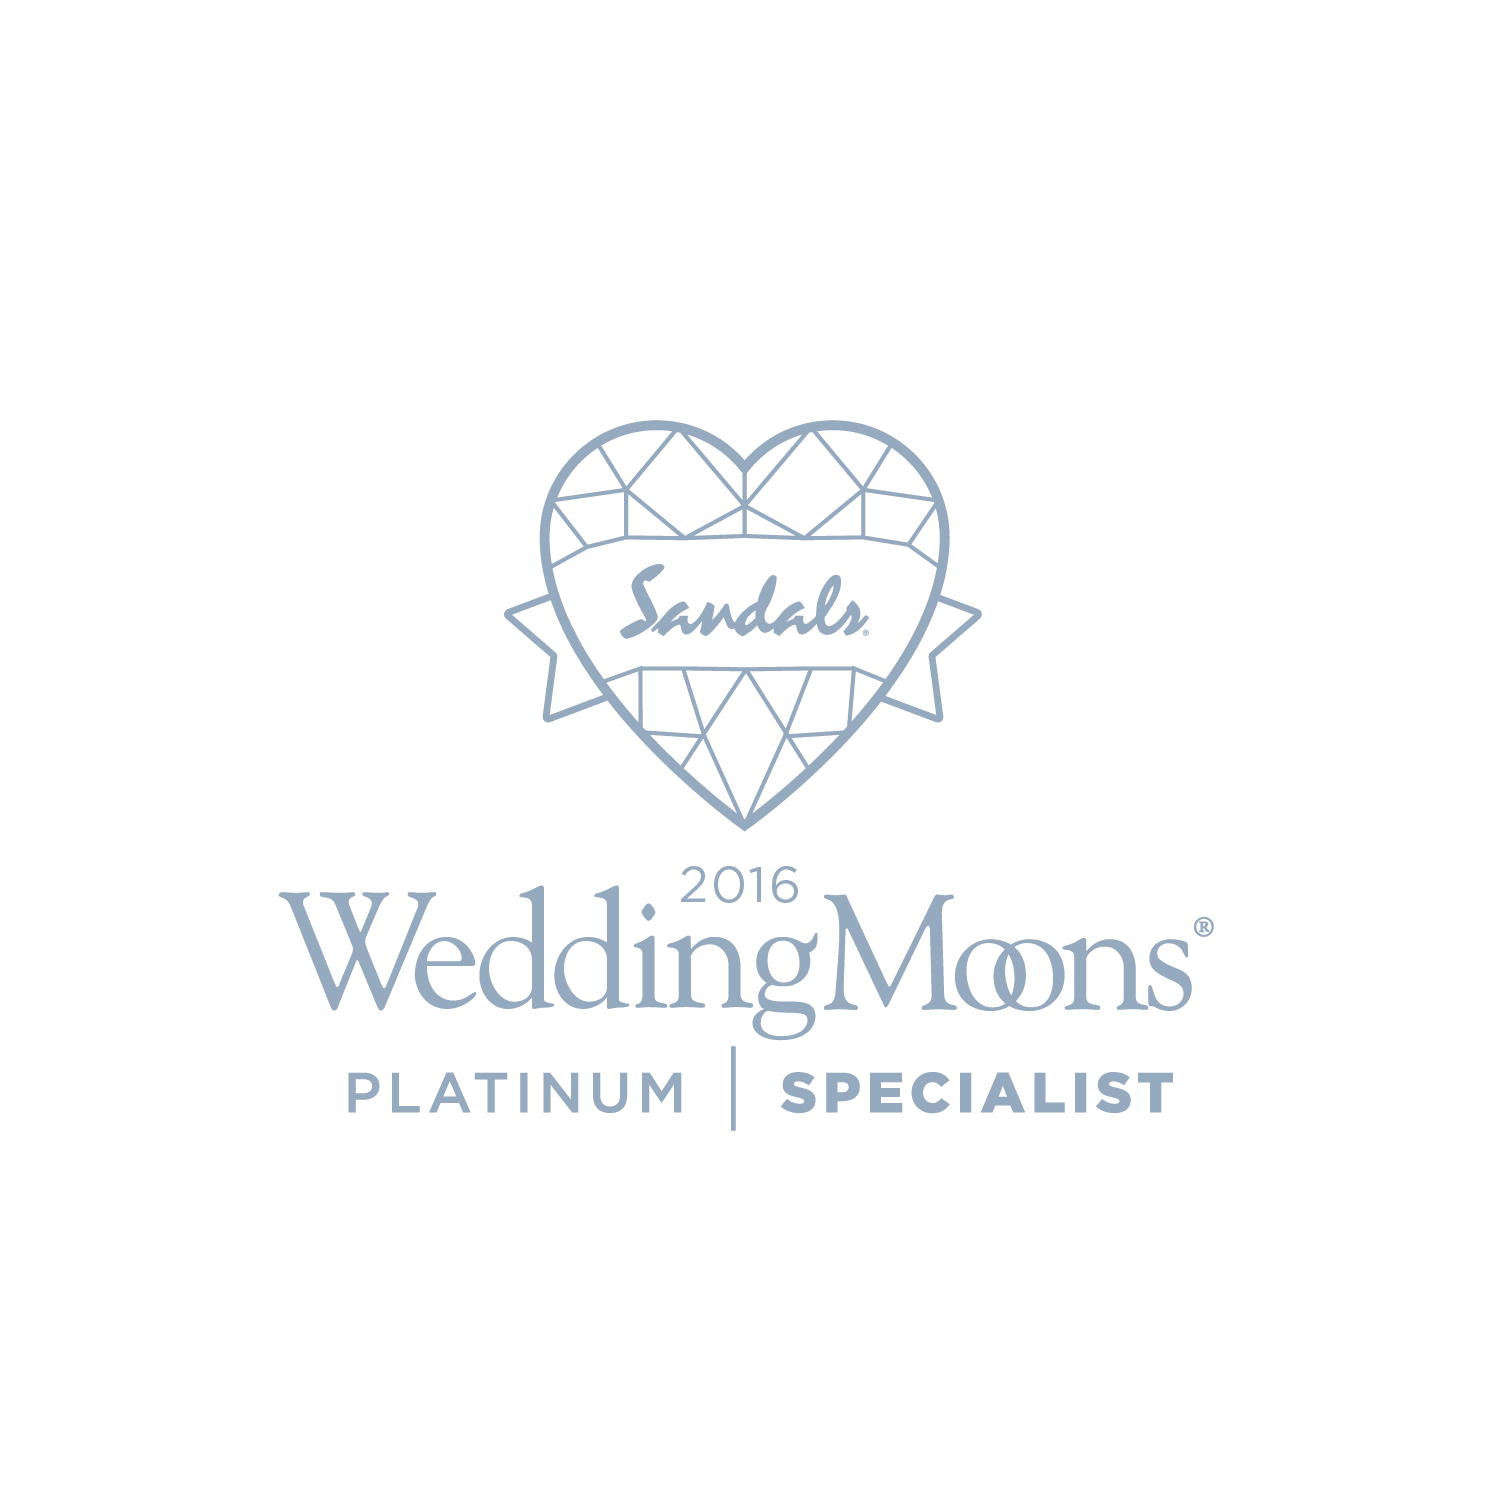 Sandals Platinum Weddingmoons Specialist